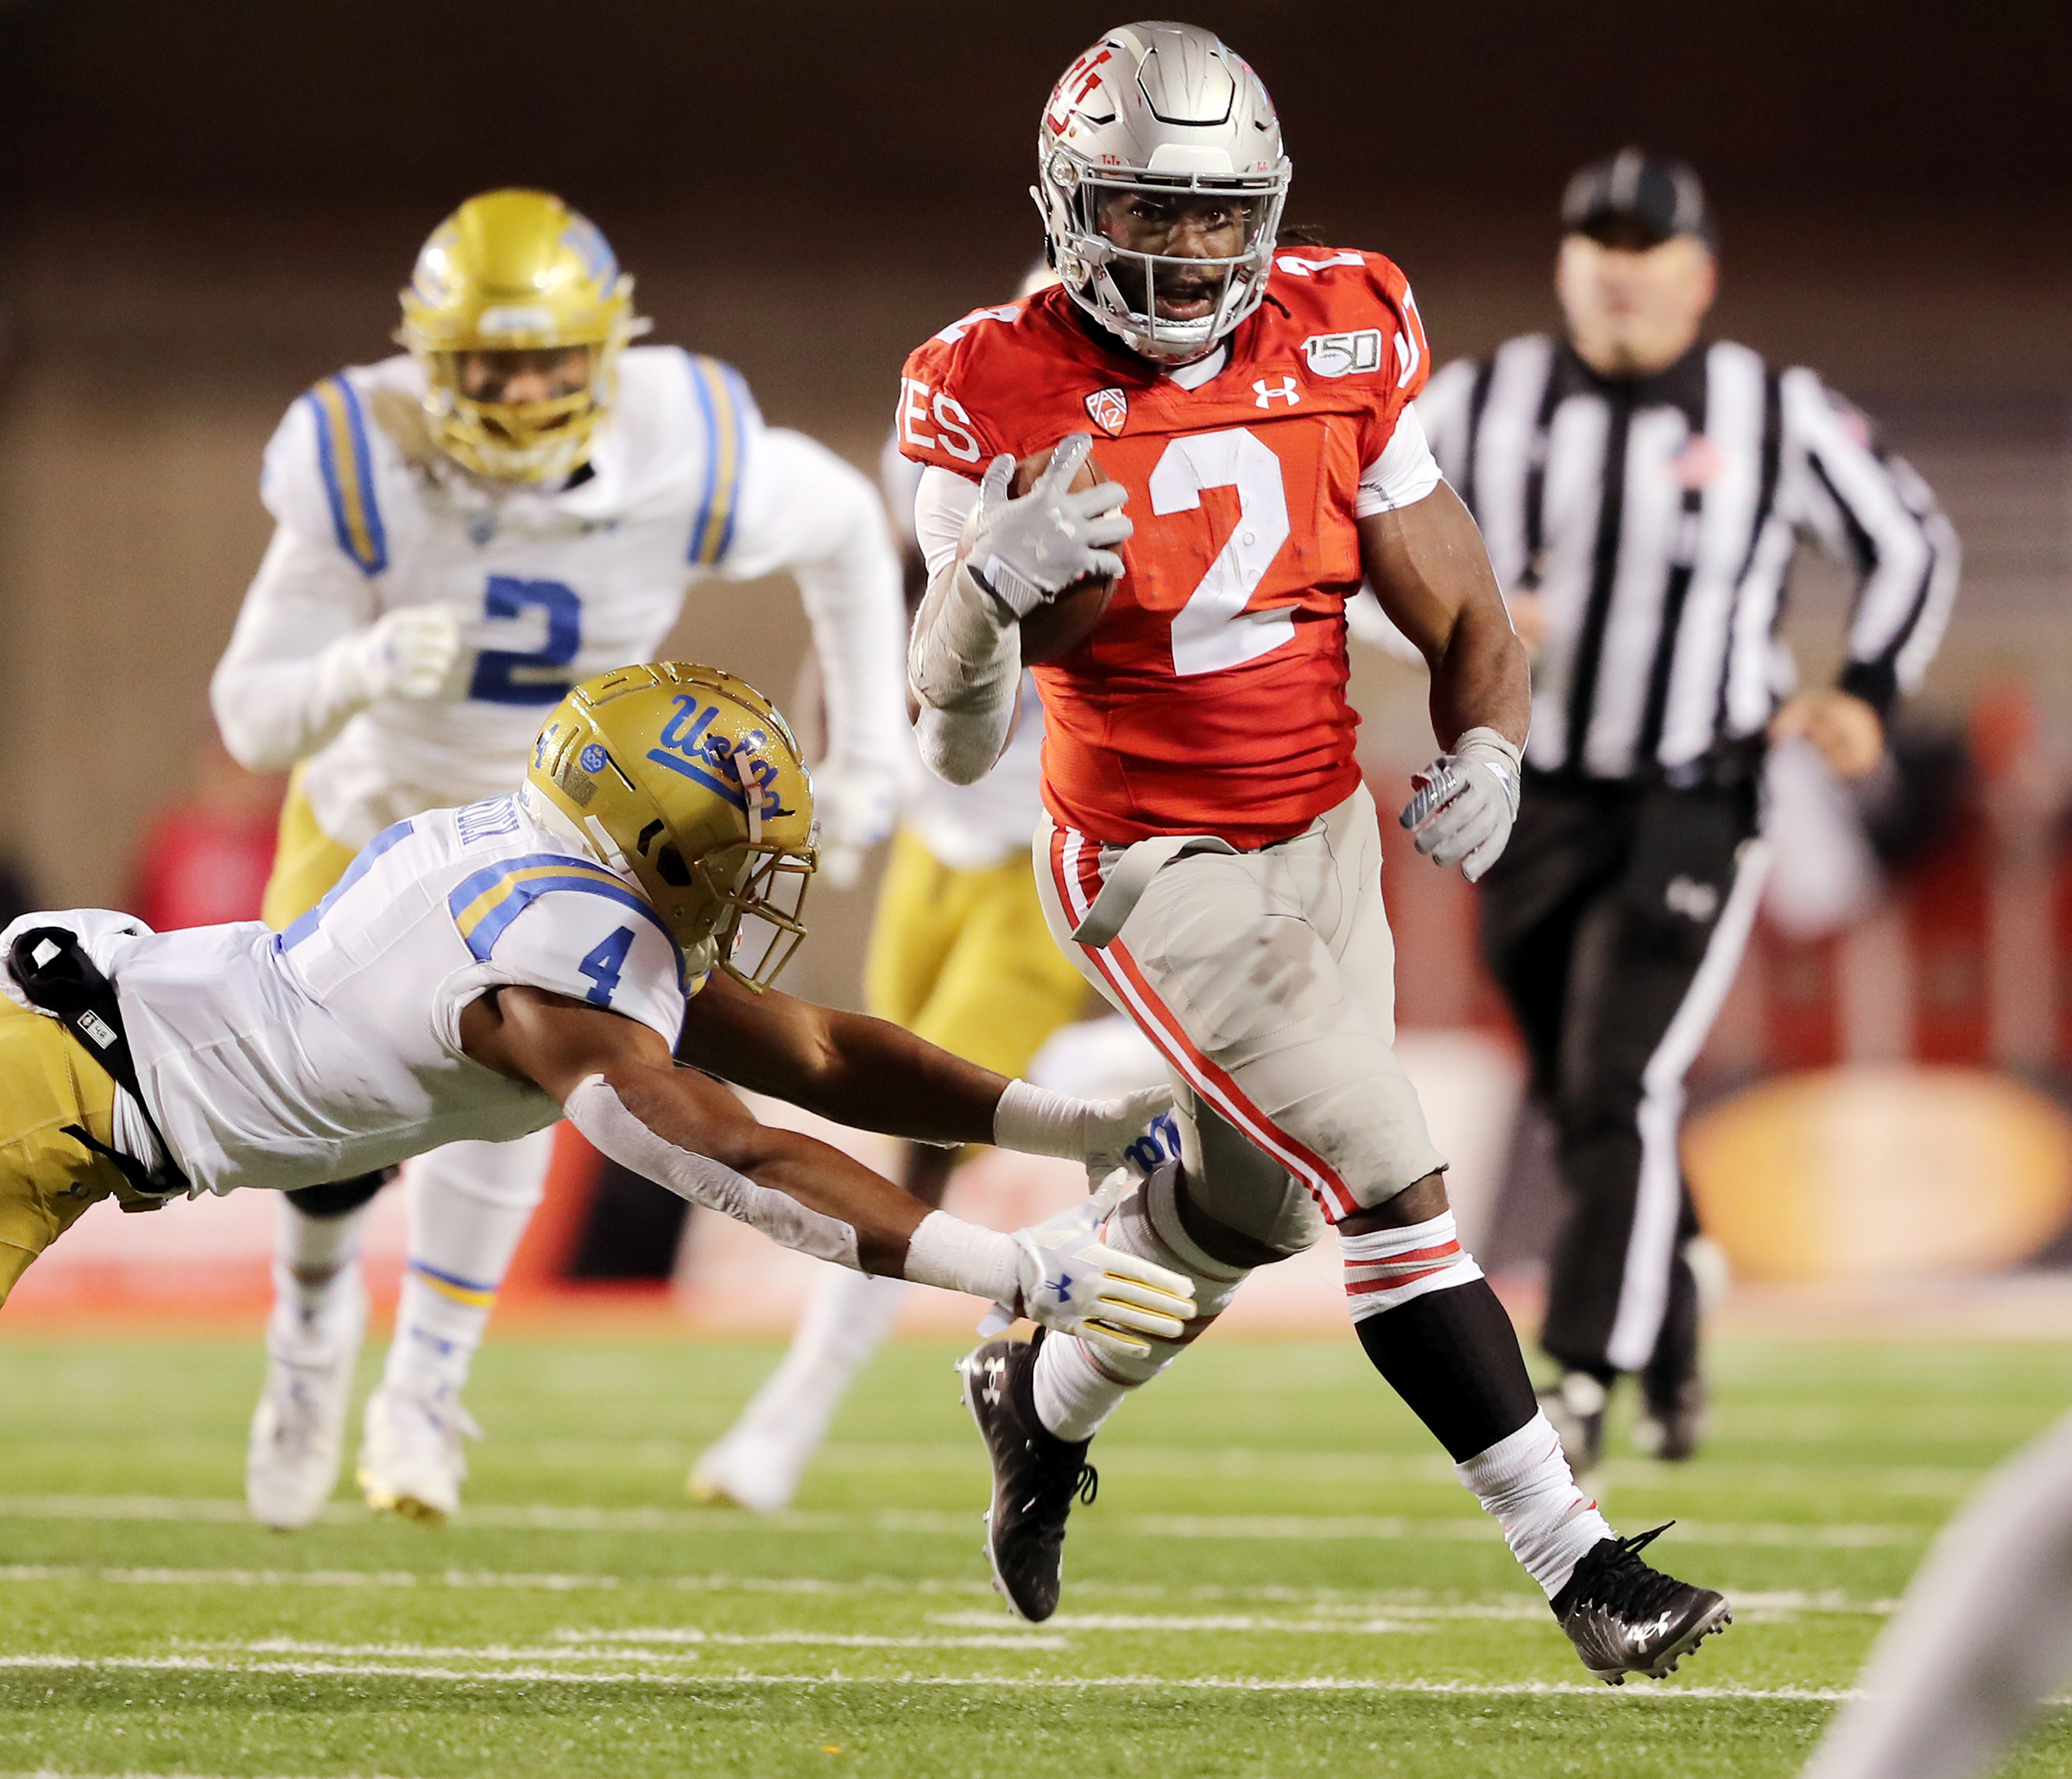 Utah Utes running back Zack Moss (2) breaks away from UCLA Bruins defensive back Stephan Blaylock (4) as Utah and UCLA play a college football game in Salt Lake City at Rice Eccles Stadium on Saturday, Nov. 16, 2019.